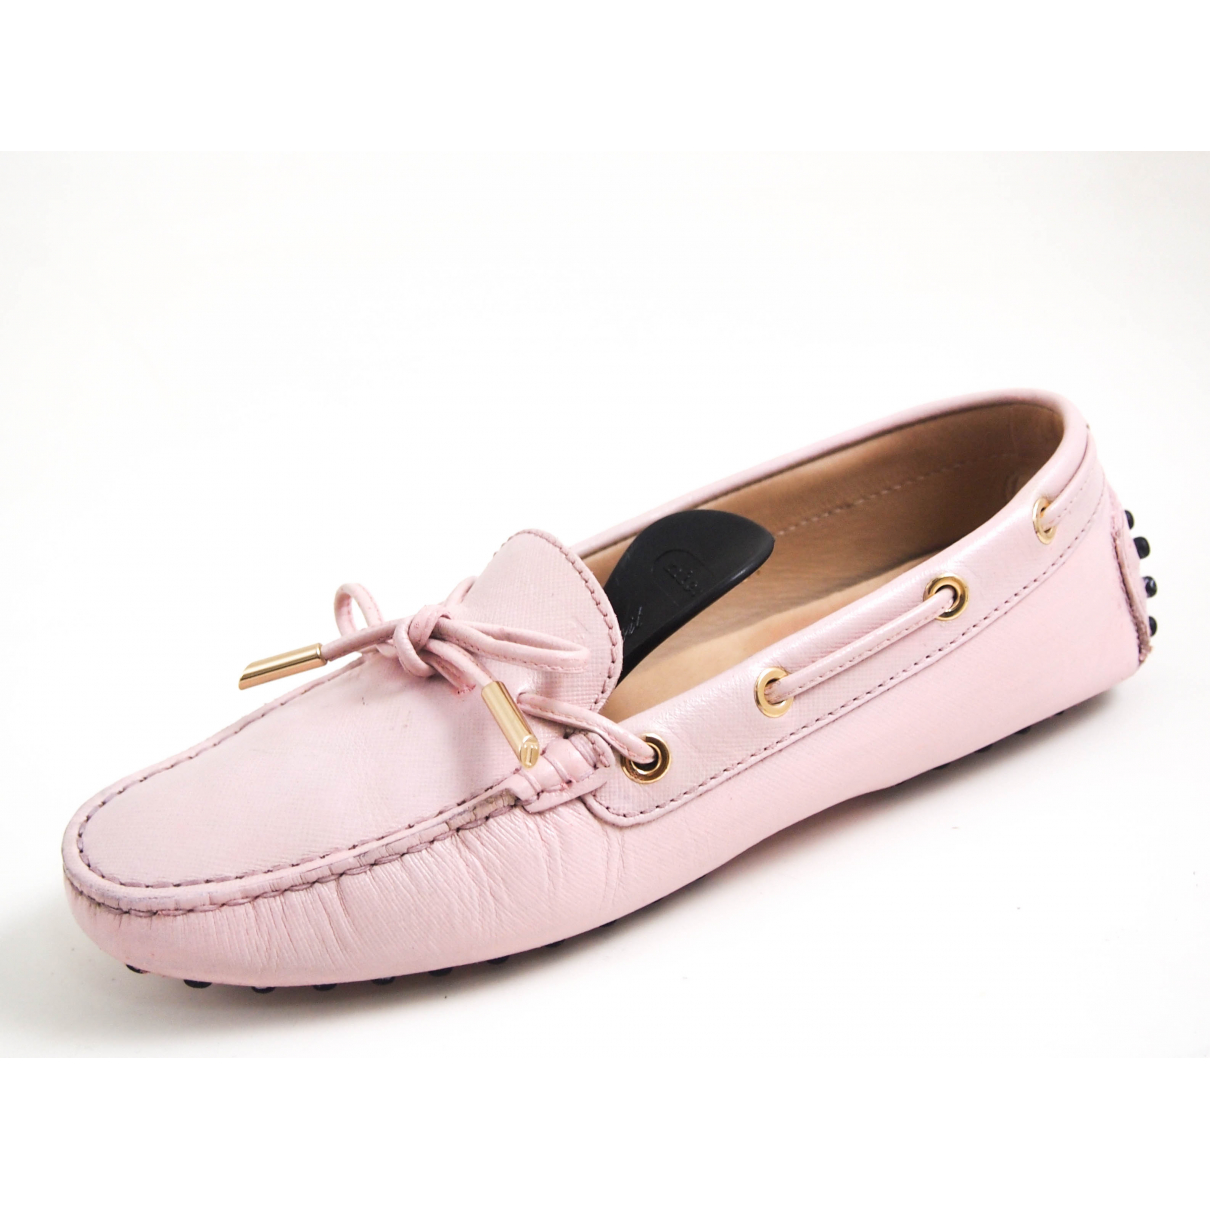 Tod's Gommino Pink Leather Flats for Women 37 EU